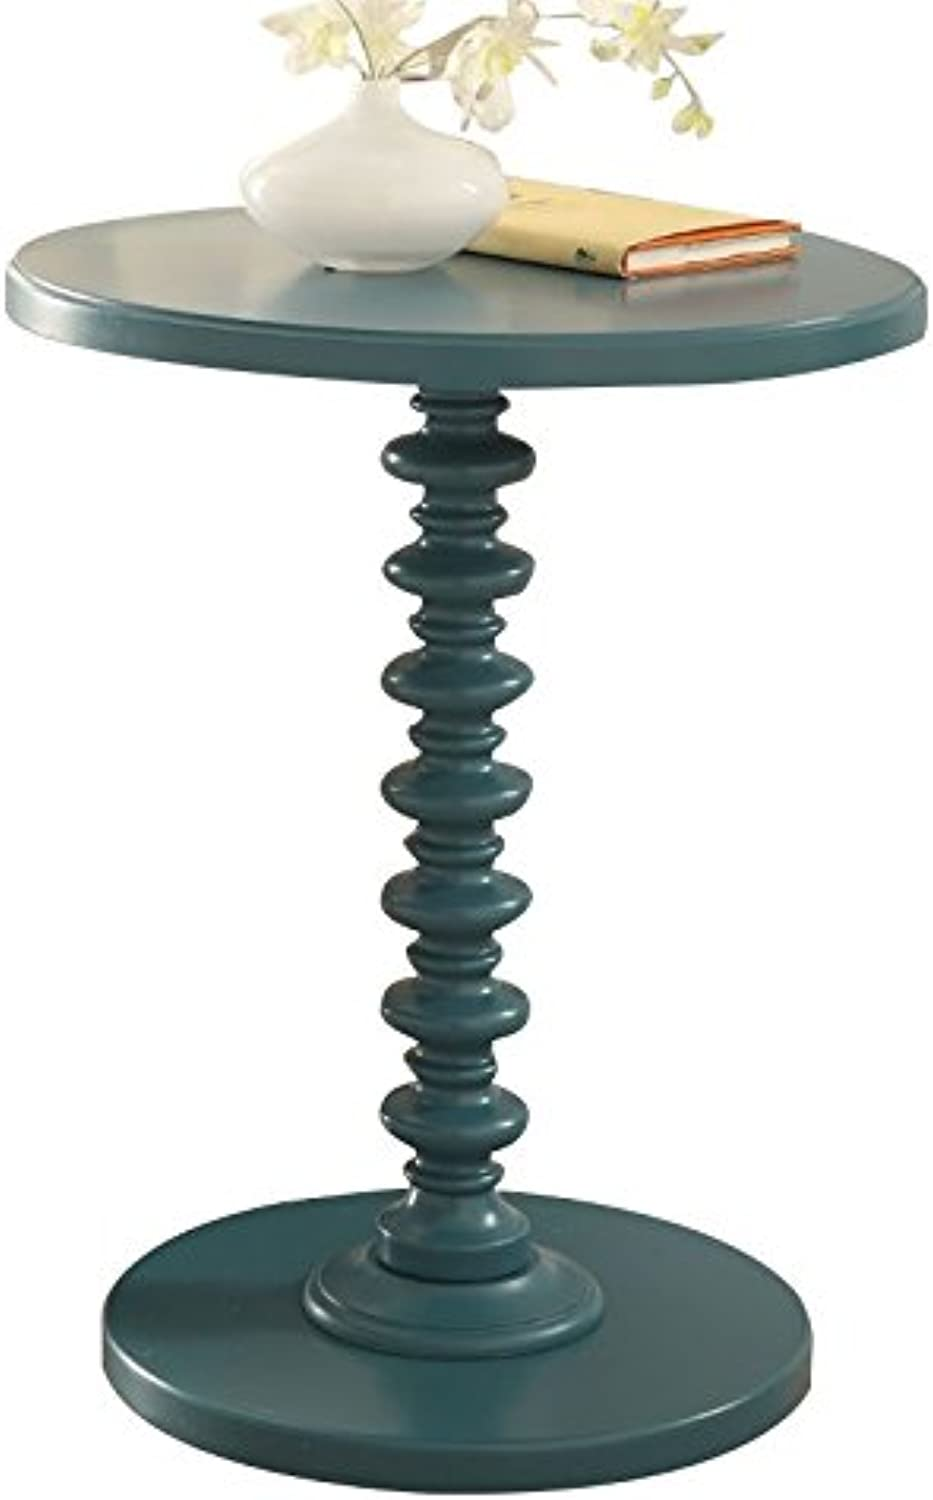 Bowery Hill End Table in Teal